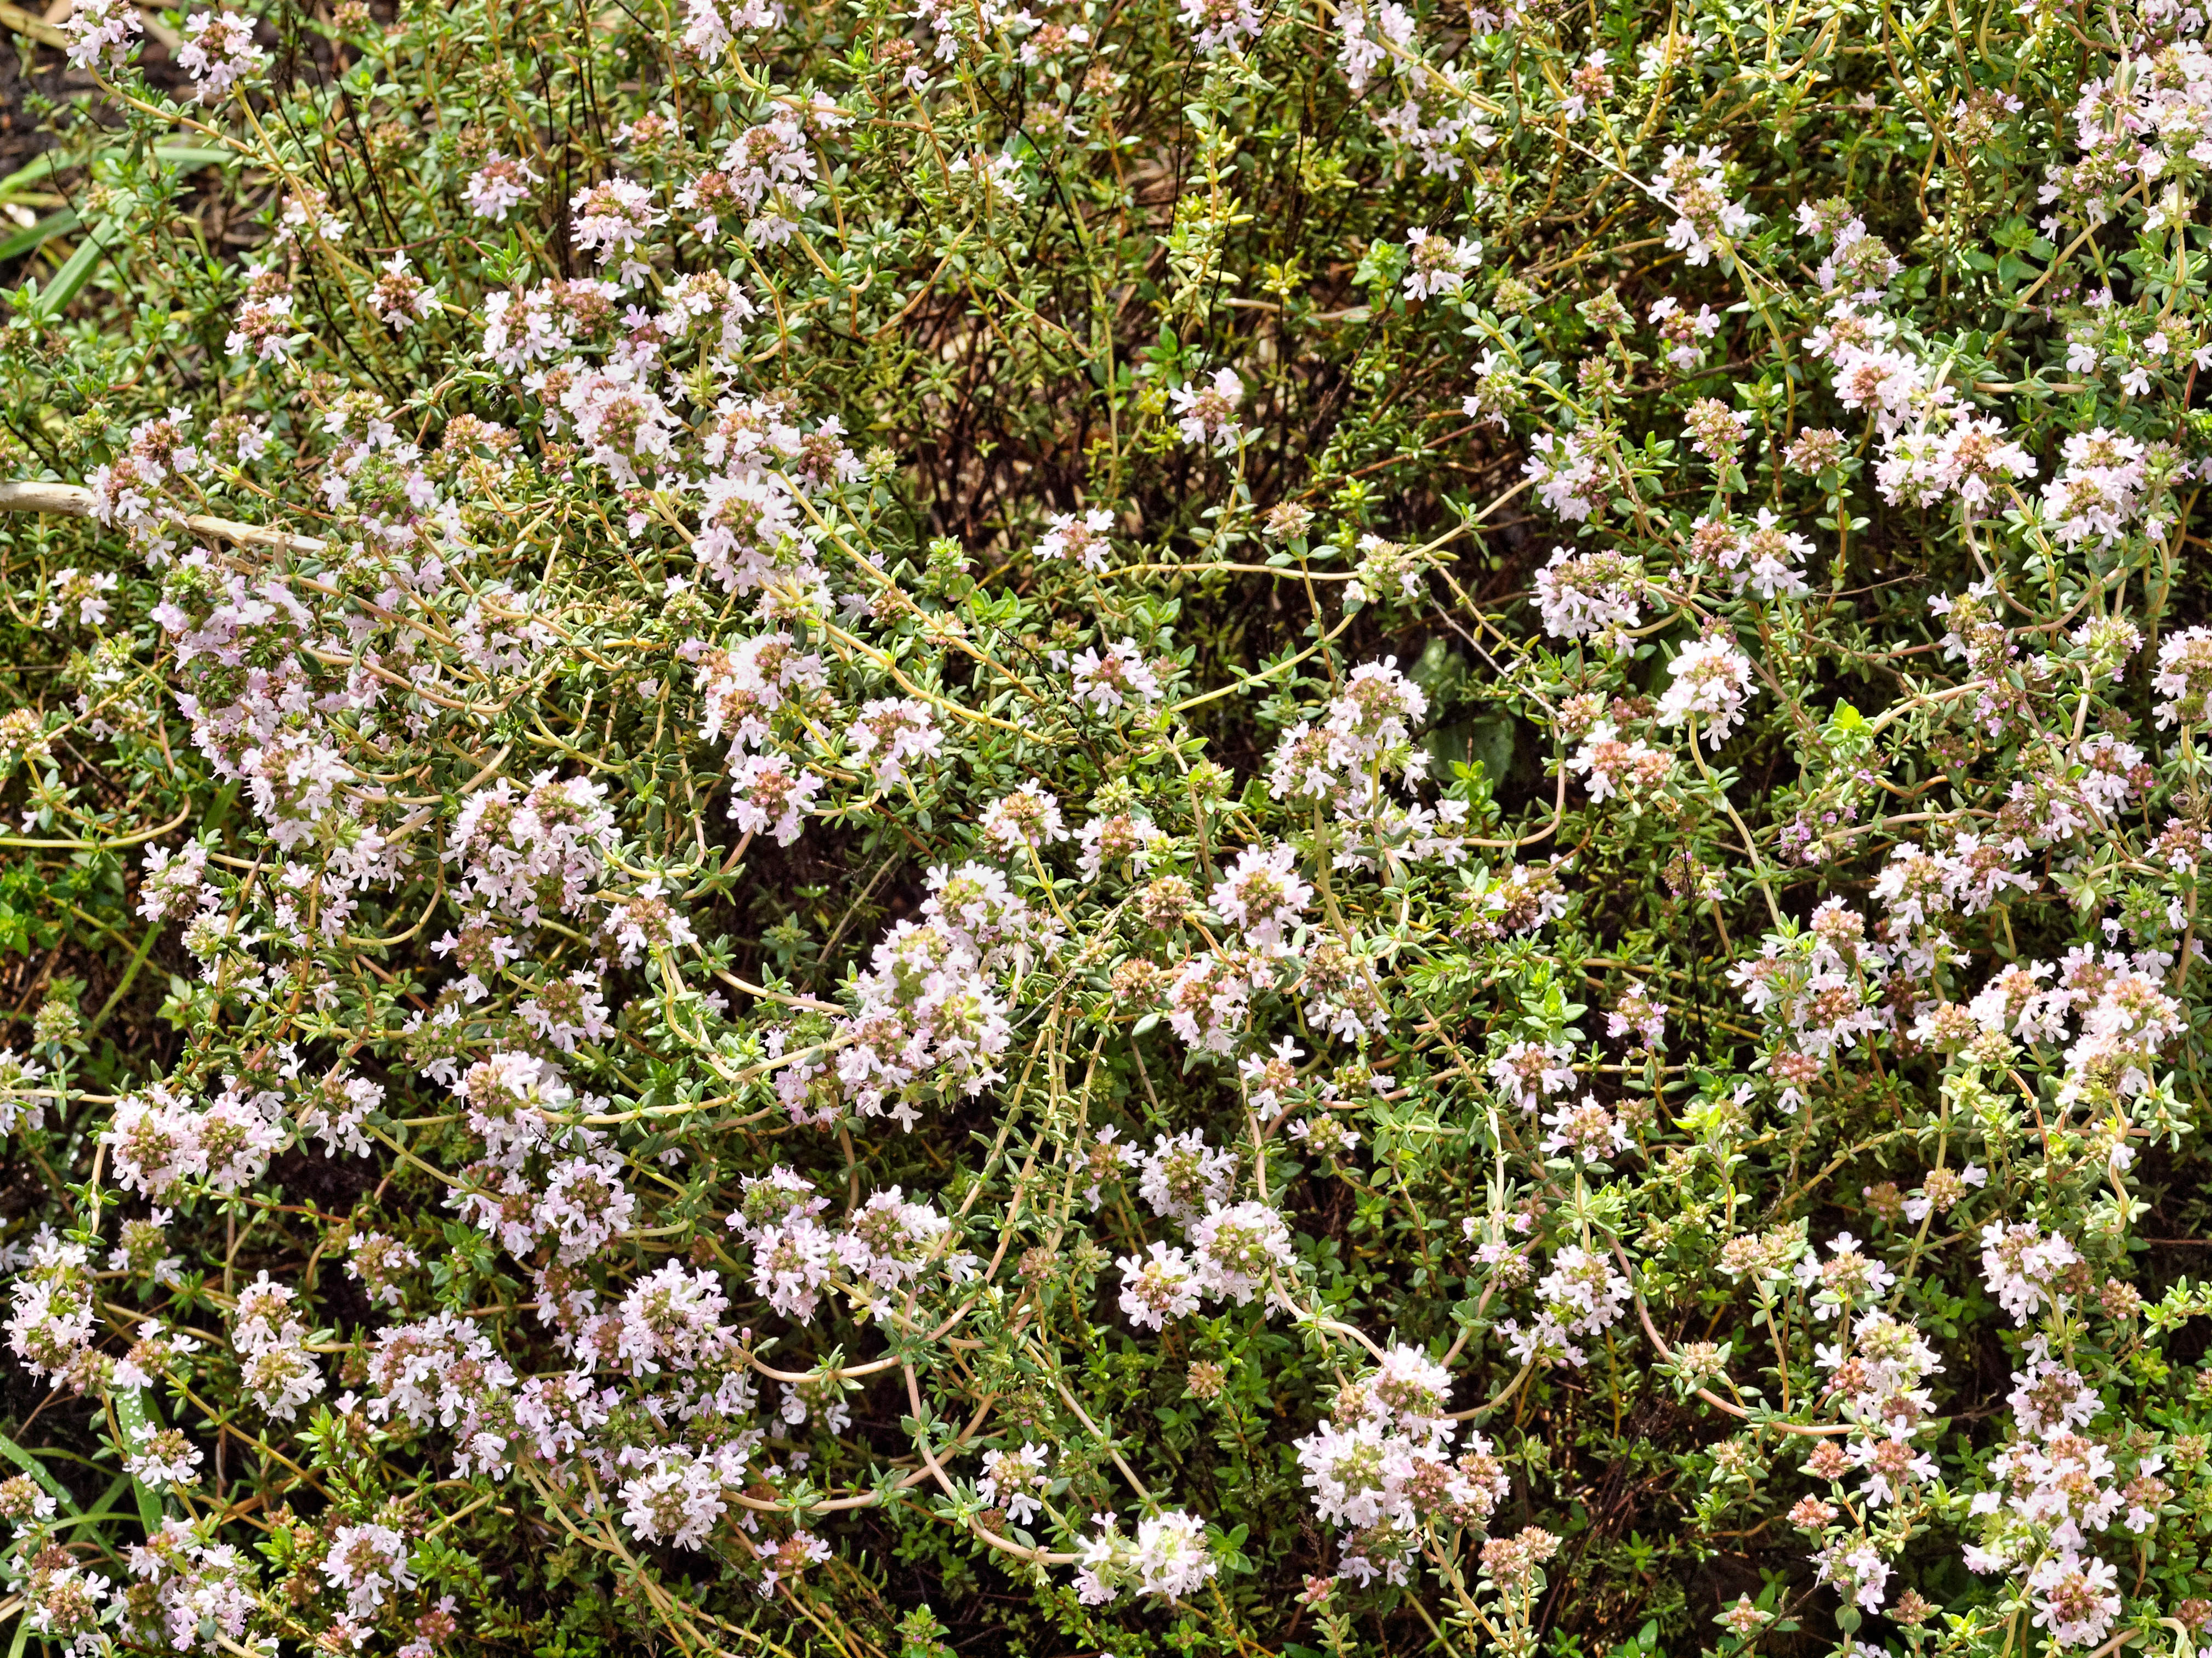 This should be Thyme-1.jpeg.  Is it missing?